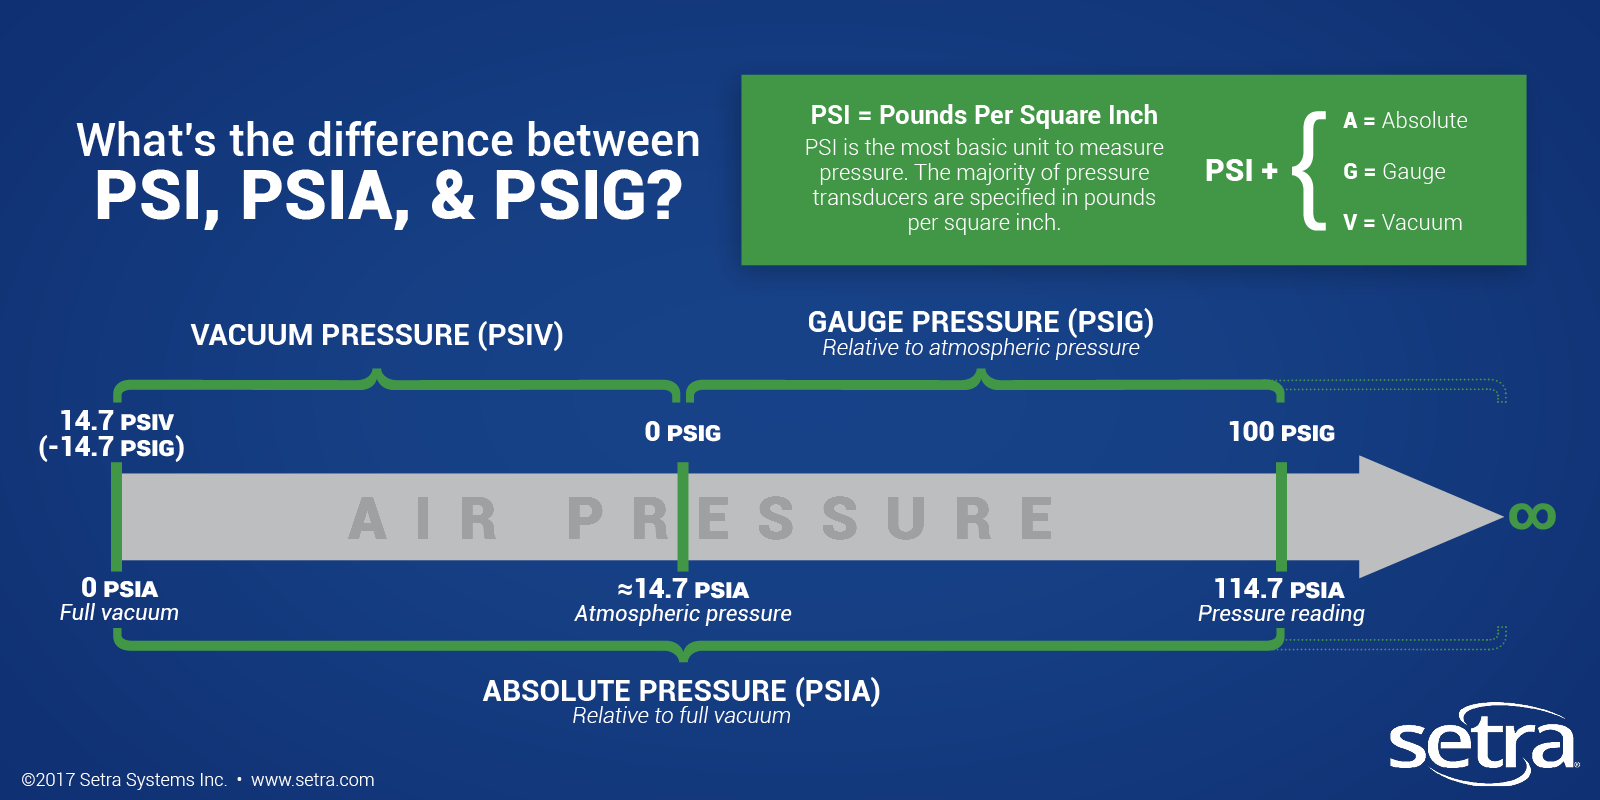 What's the Difference Between PSI, PSIA & PSIG?